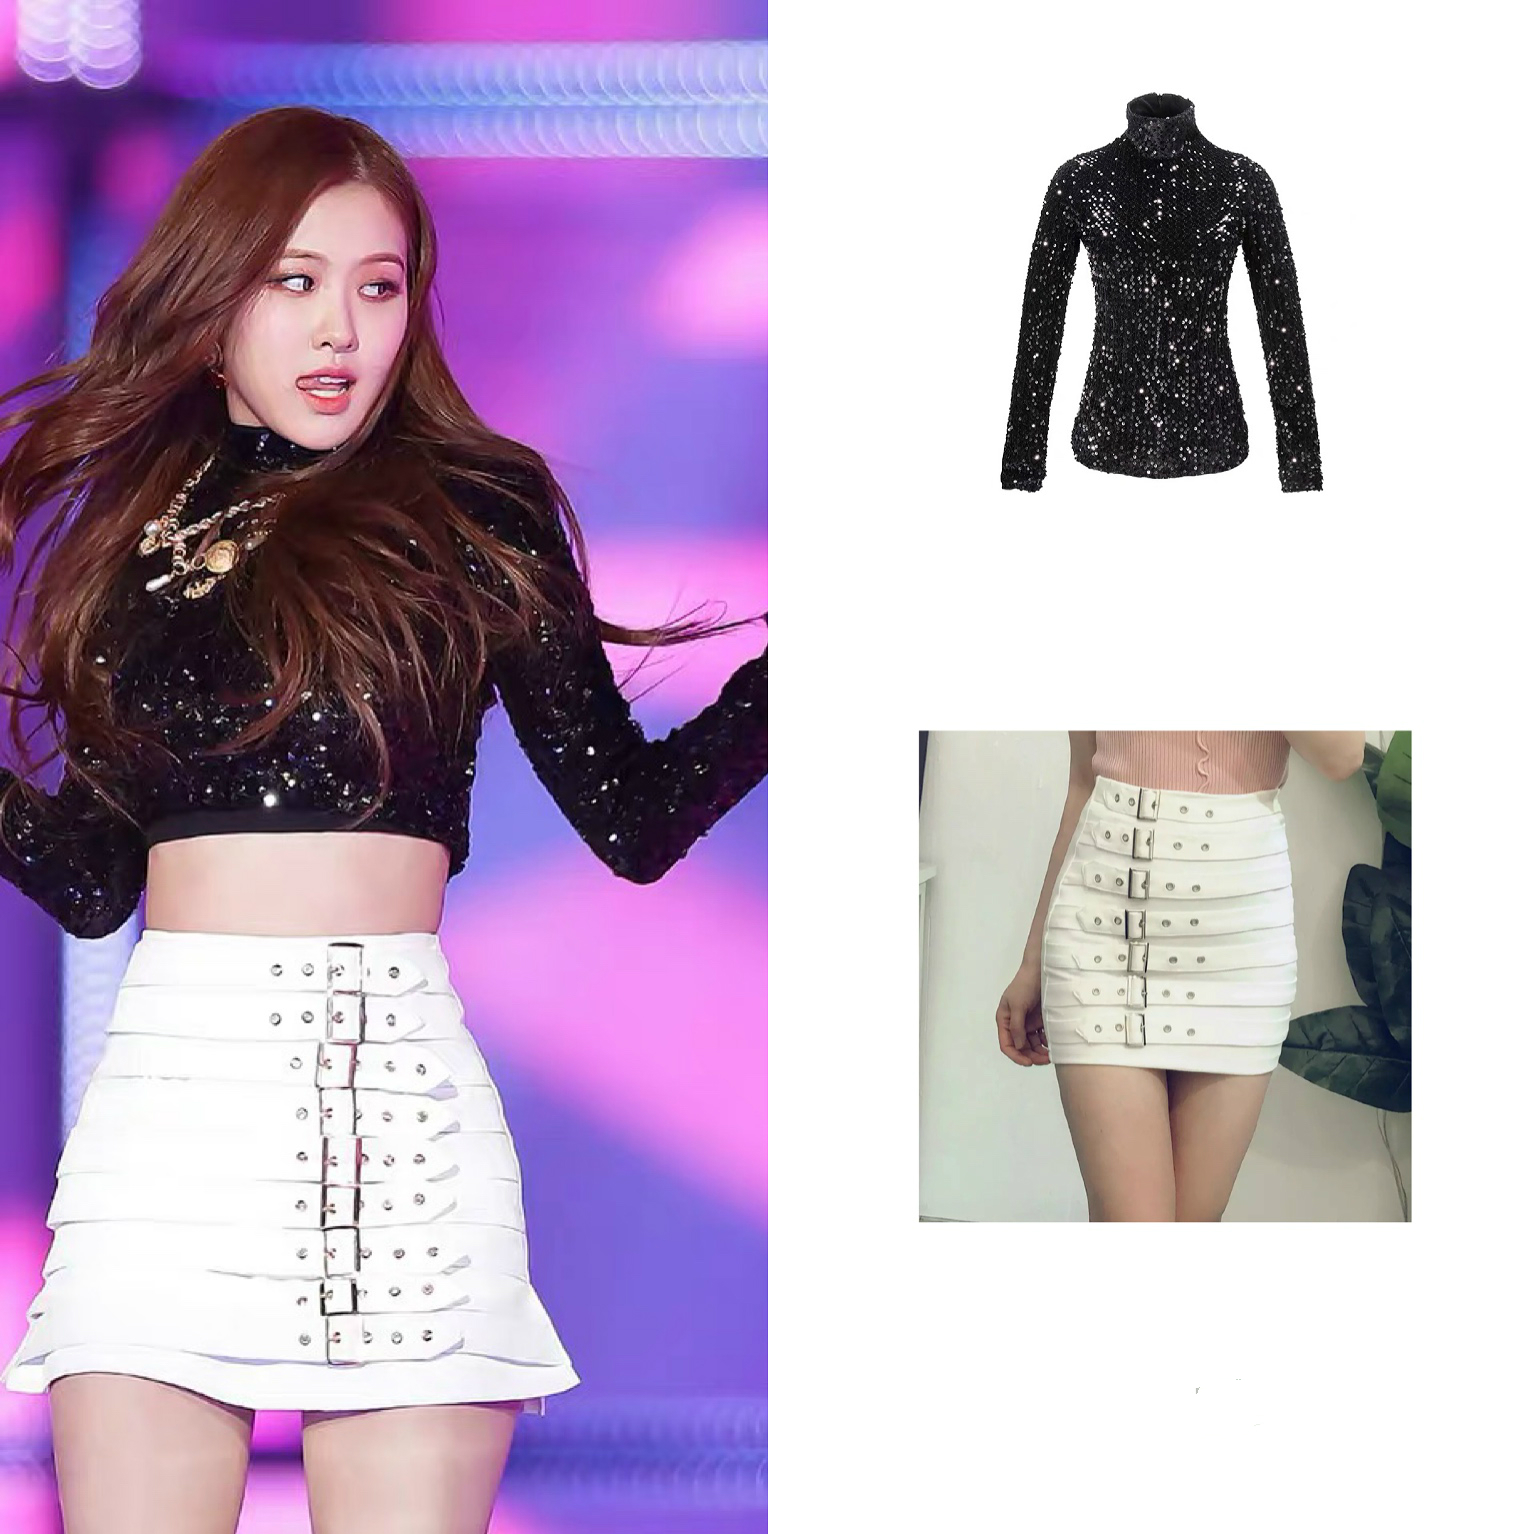 Kpop Blackpink ROSE Stage Show Same Sequins Long Sleeve Turtleneck Sweatshirts Tops + High Waist Sexy Skirts Women Two-piece Set